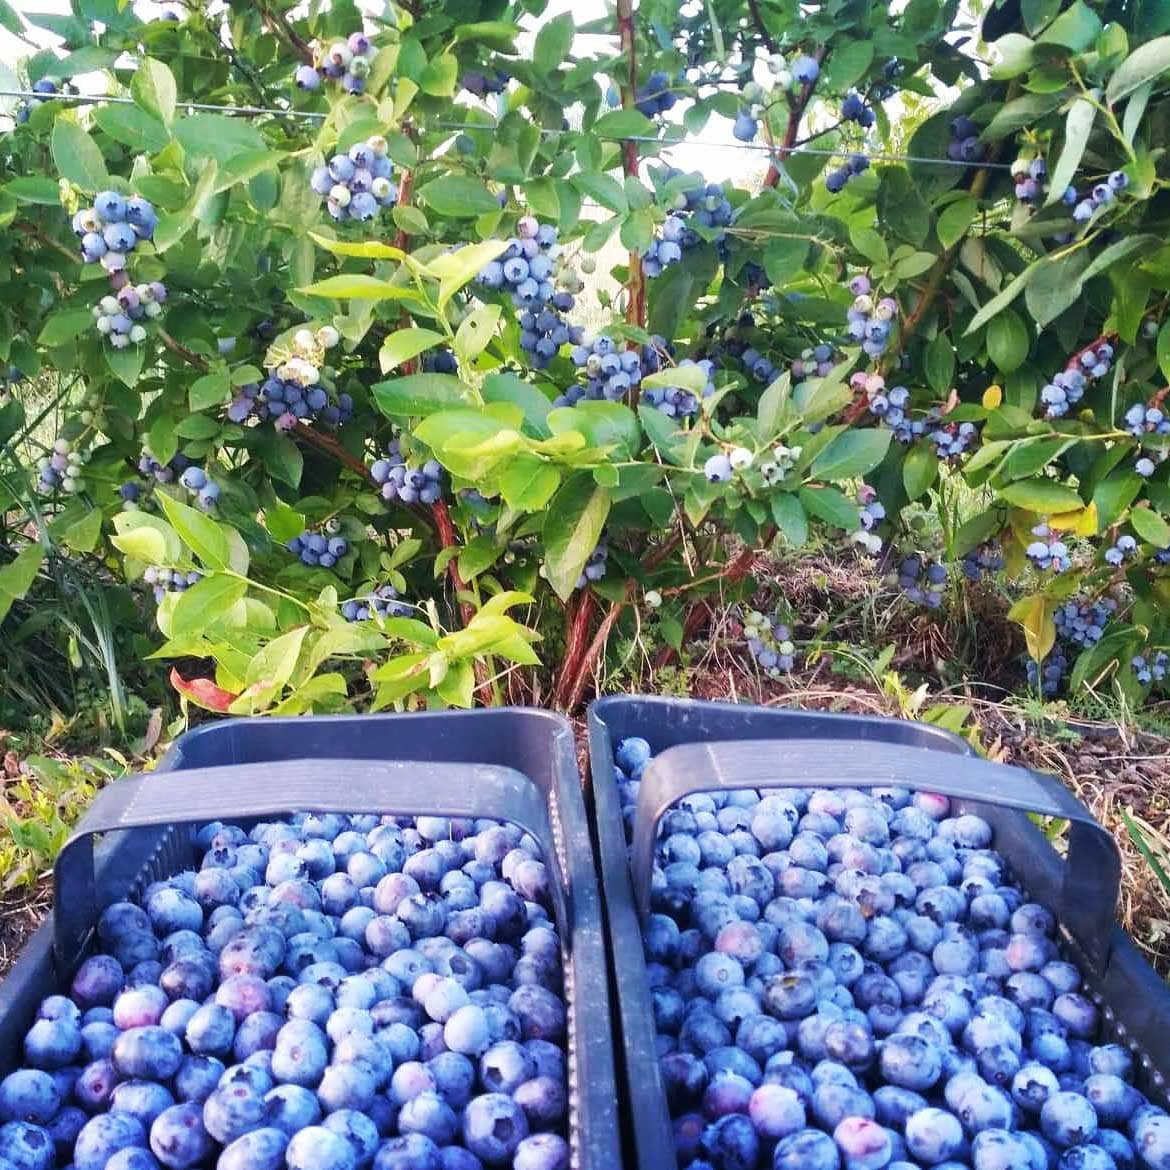 Freshly harvested blueberries from the Ekosad plantation